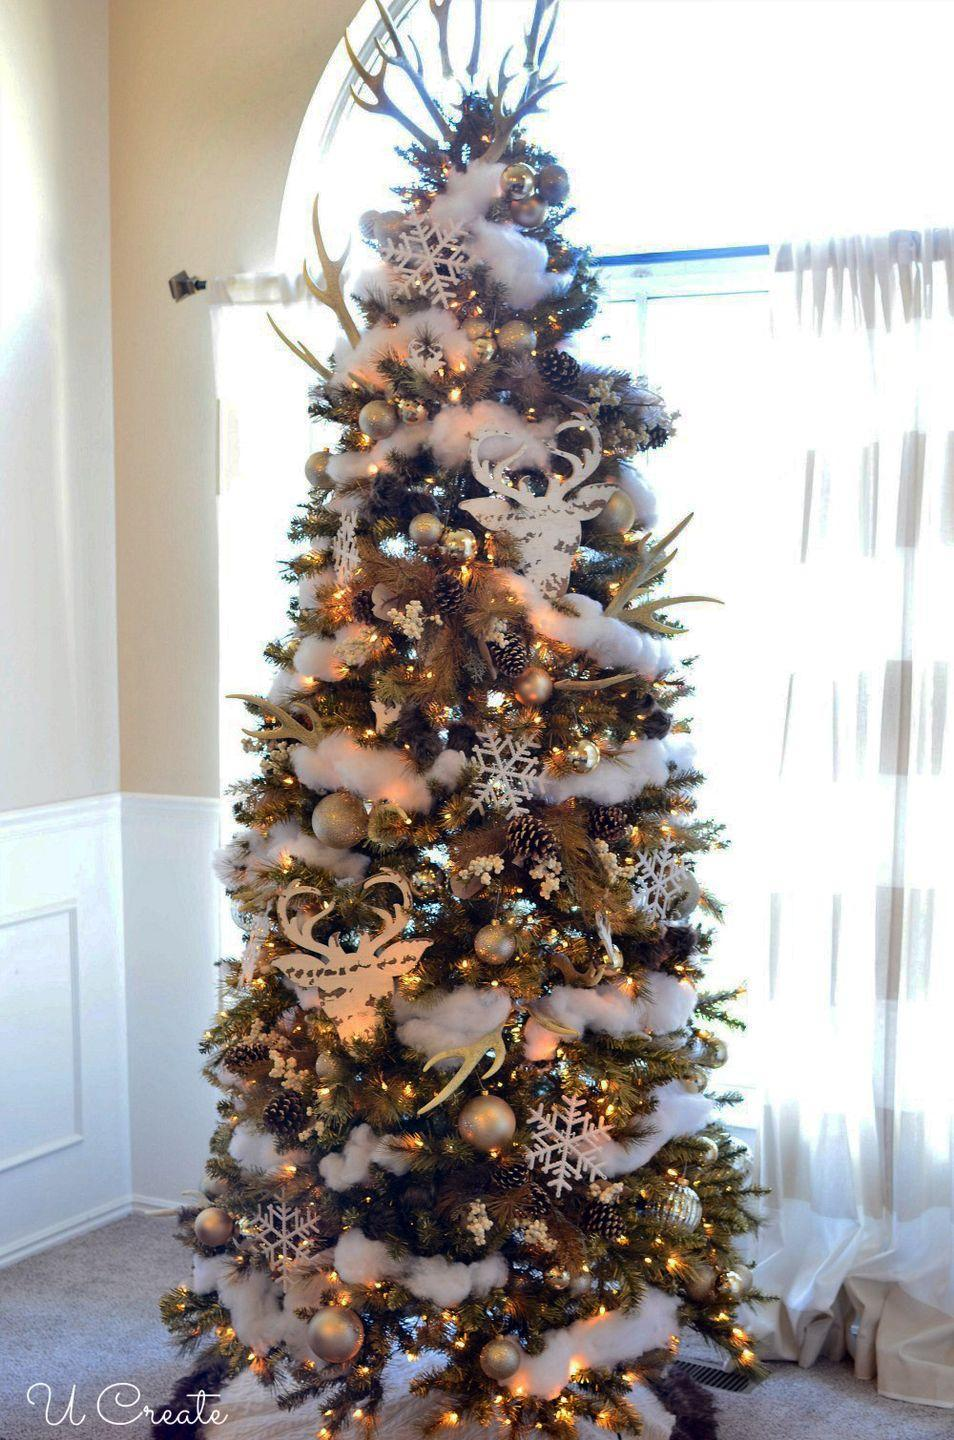 """<p>Turn your living room into the North Pole with this deer-themed winter wonderland tree. It's different, it's stunning, and your family will love it. </p><p><strong><em>Get the tutorial at <a href=""""https://www.u-createcrafts.com/winter-wondeerland-christmas-tree/"""" rel=""""nofollow noopener"""" target=""""_blank"""" data-ylk=""""slk:U Create Crafts"""" class=""""link rapid-noclick-resp"""">U Create Crafts</a>.</em></strong></p><p><a class=""""link rapid-noclick-resp"""" href=""""https://go.redirectingat.com?id=74968X1596630&url=https%3A%2F%2Fwww.michaels.com%2F14.5in-deer-head-whitewashed-wood-plaque-by-artminds%2F10643619.html&sref=https%3A%2F%2Fwww.womansday.com%2Fhome%2Fhow-to%2Fg2025%2Fchristmas-tree-decorations%2F"""" rel=""""nofollow noopener"""" target=""""_blank"""" data-ylk=""""slk:BUY DEER HEAD PLAQUES"""">BUY DEER HEAD PLAQUES</a></p>"""